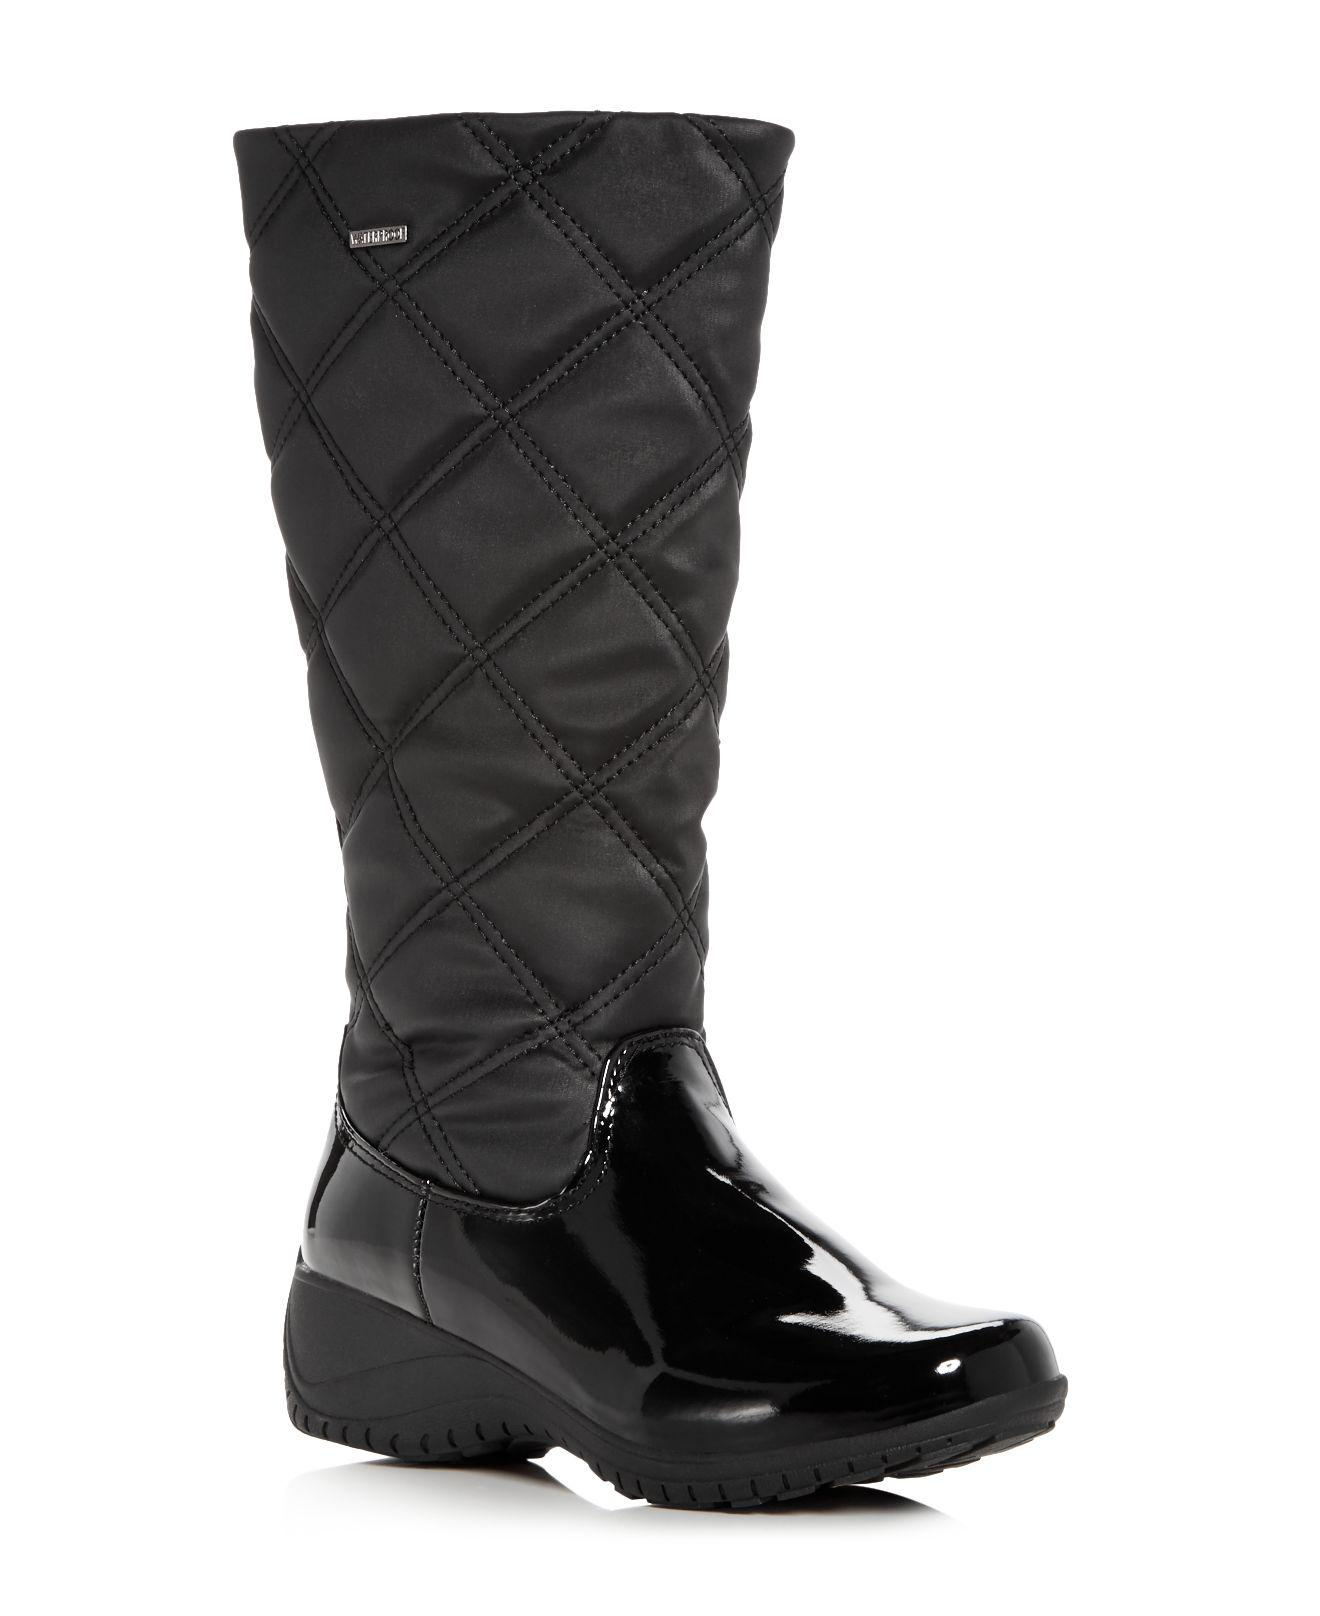 7eb14e8257dee Khombu Women's Addison Waterproof Cold-weather Wedge Boots in Black ...